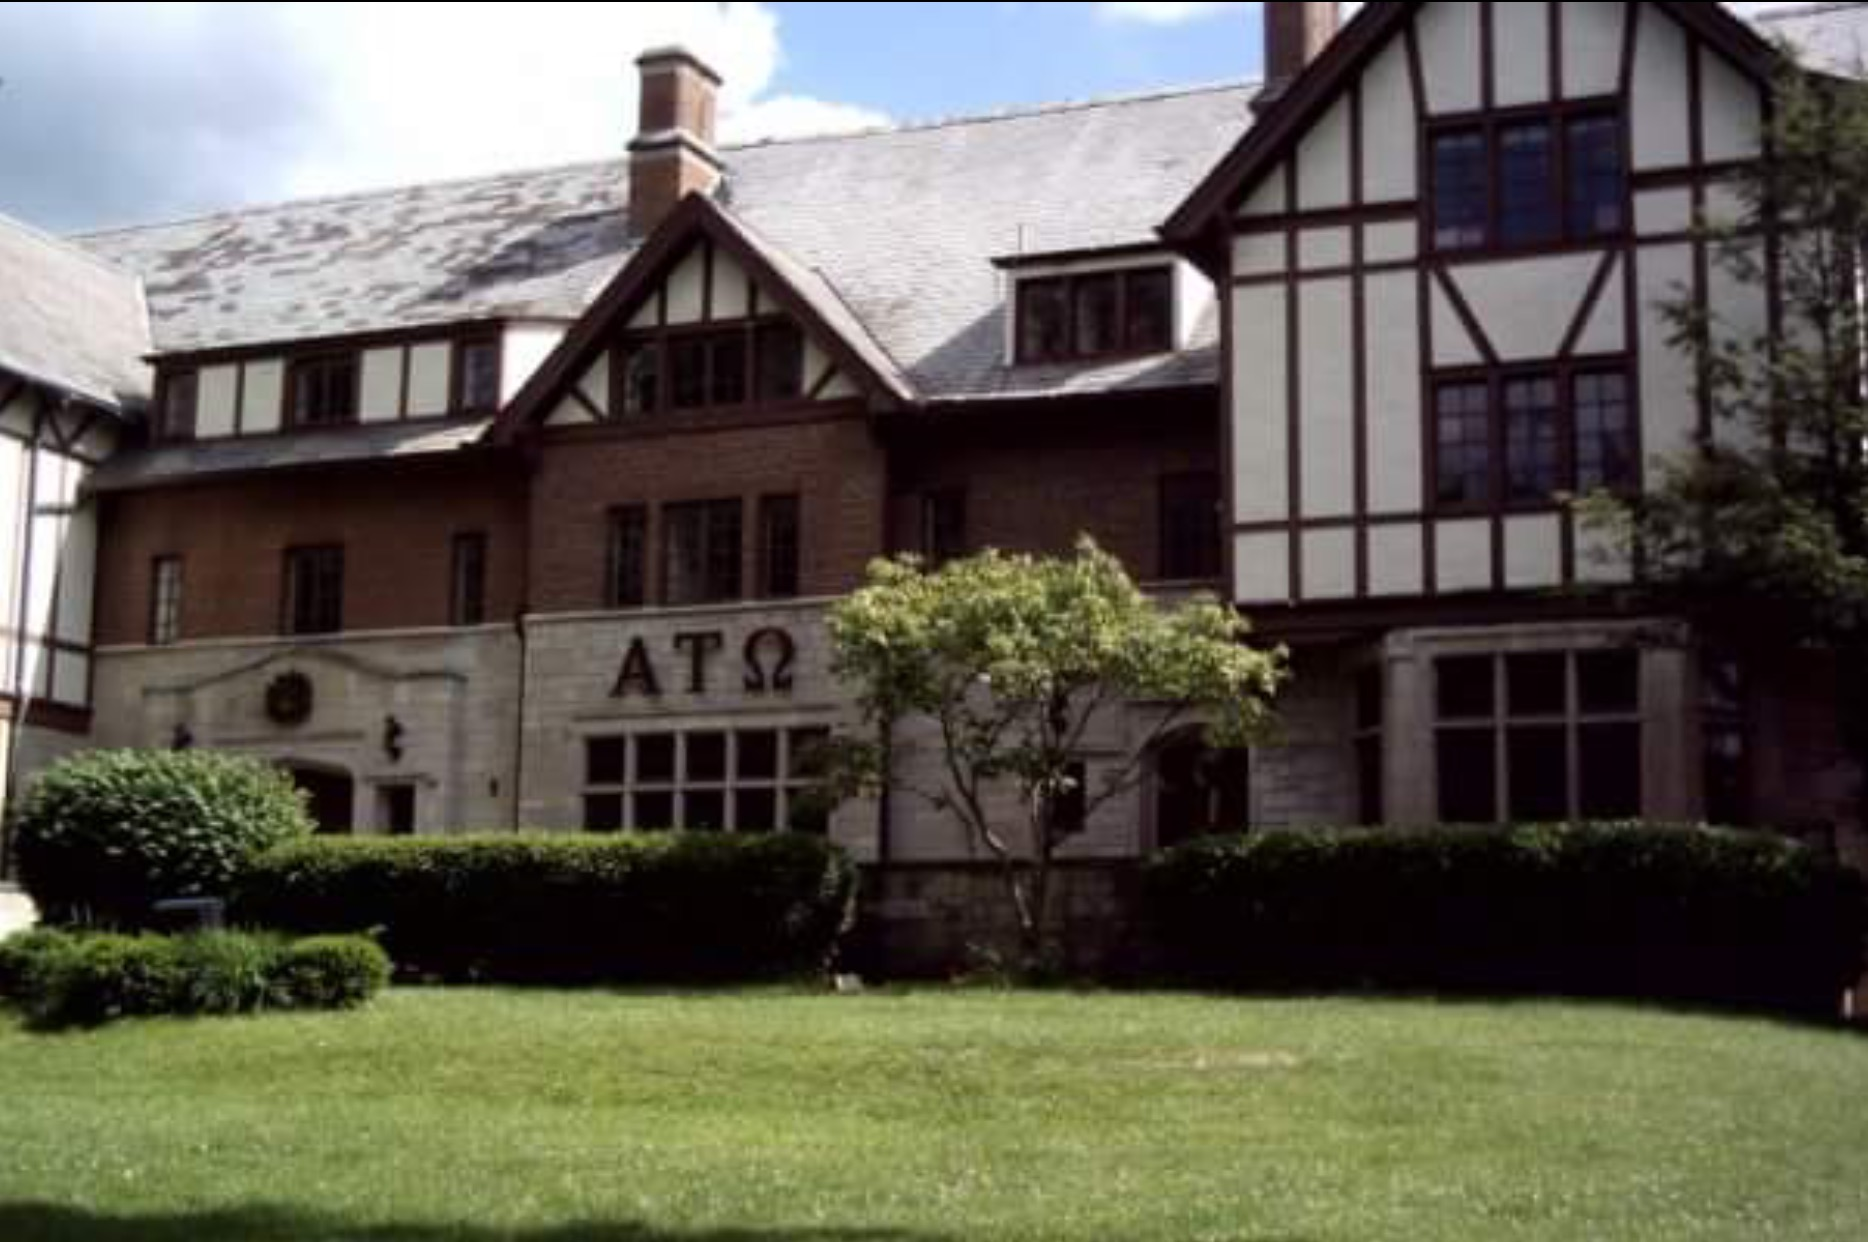 New rules at IU allow officials to enter fraternities